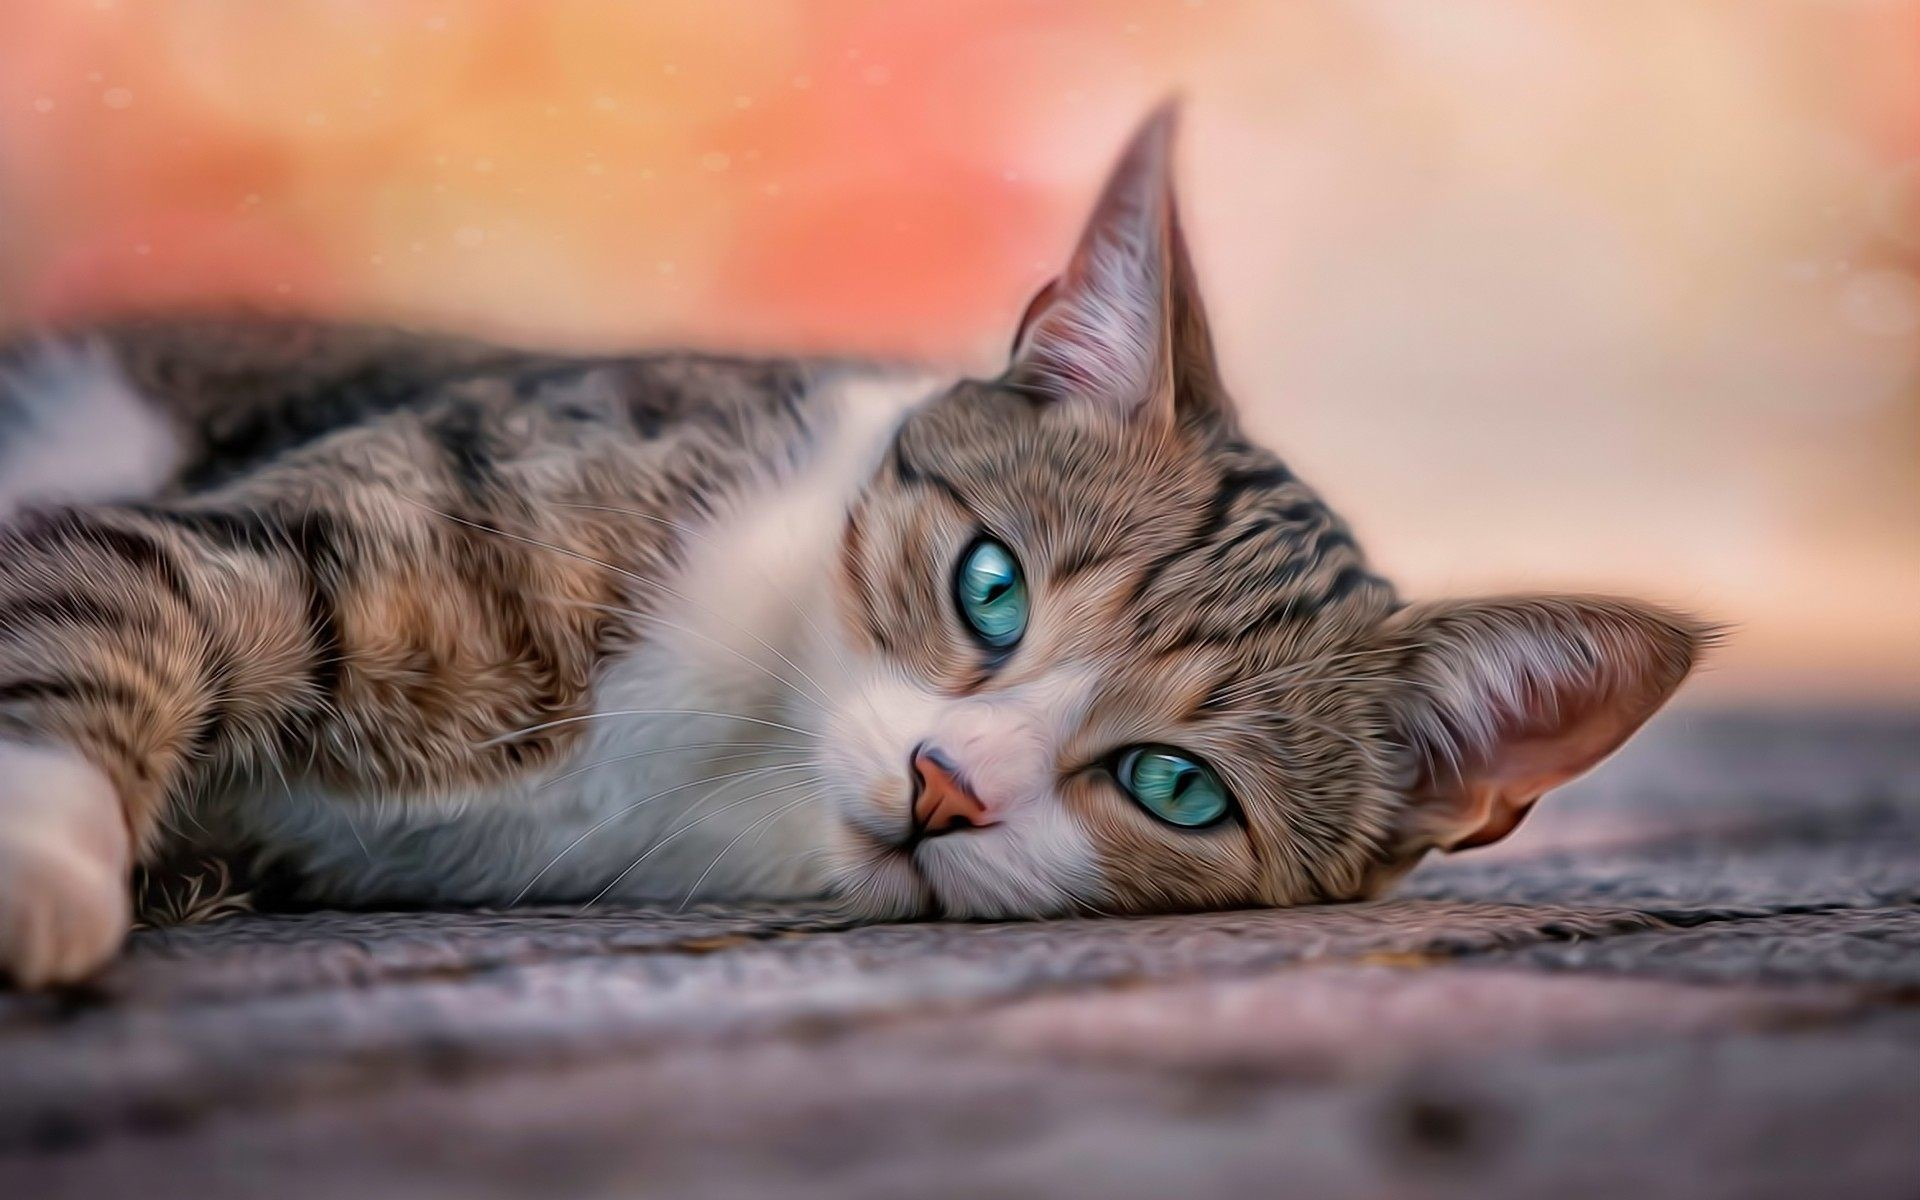 Cat wallpaper ·① Download free stunning backgrounds for ...